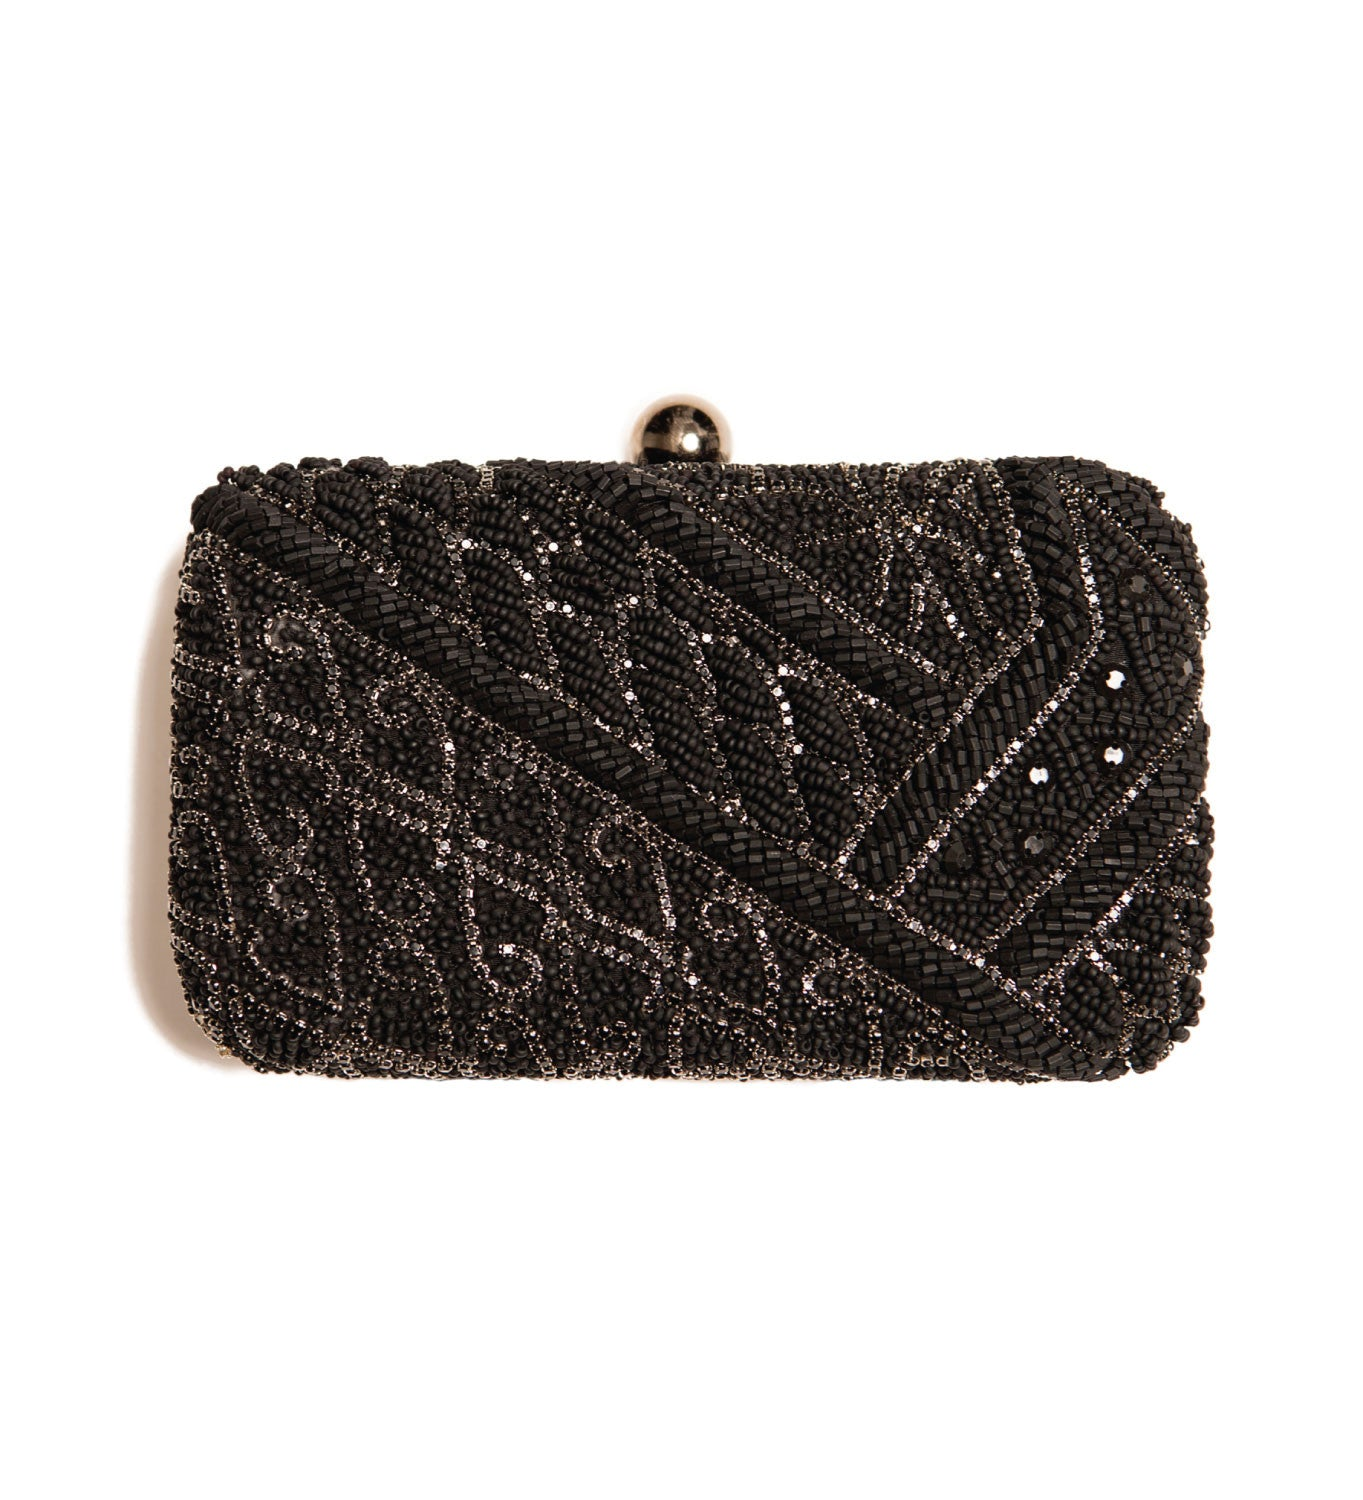 ASHLYN BEADED CLUTCH BAG